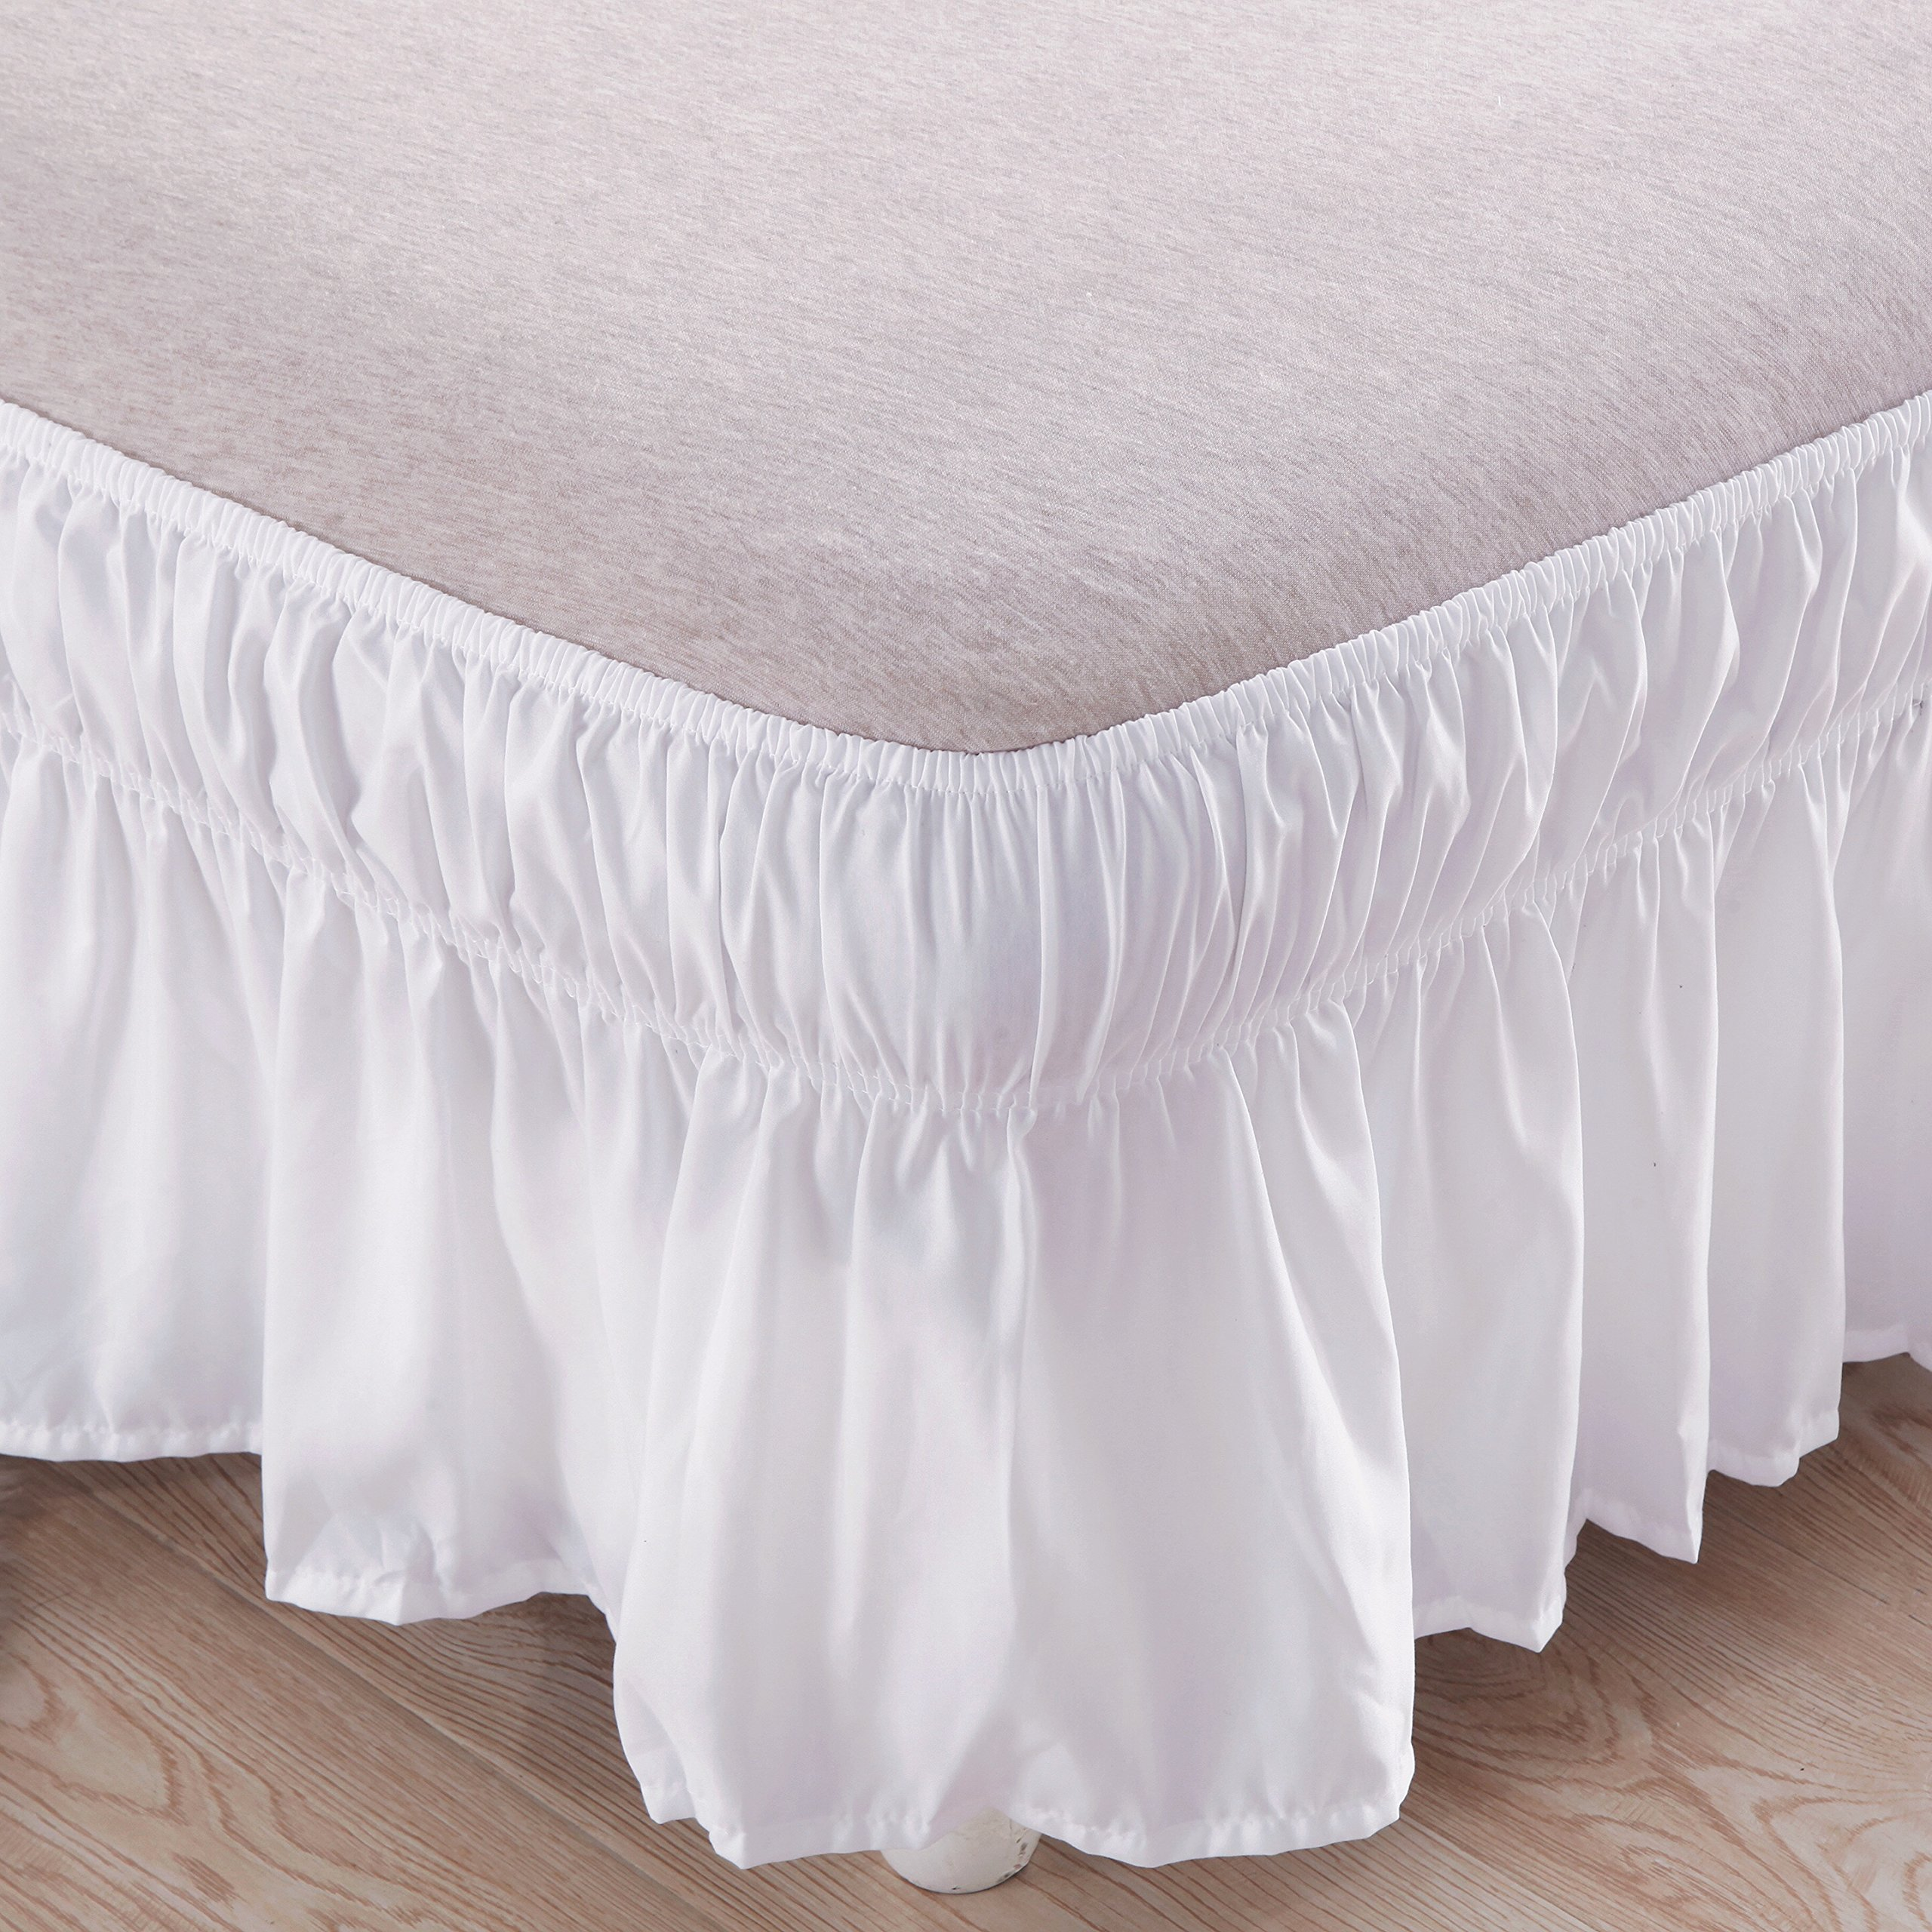 Bed Skirt-14 Inch Drop Wrap Around Ruffled (Twin/Full,White) Brushed Microfiber 1500 Adjustable Elastic Easy Fit